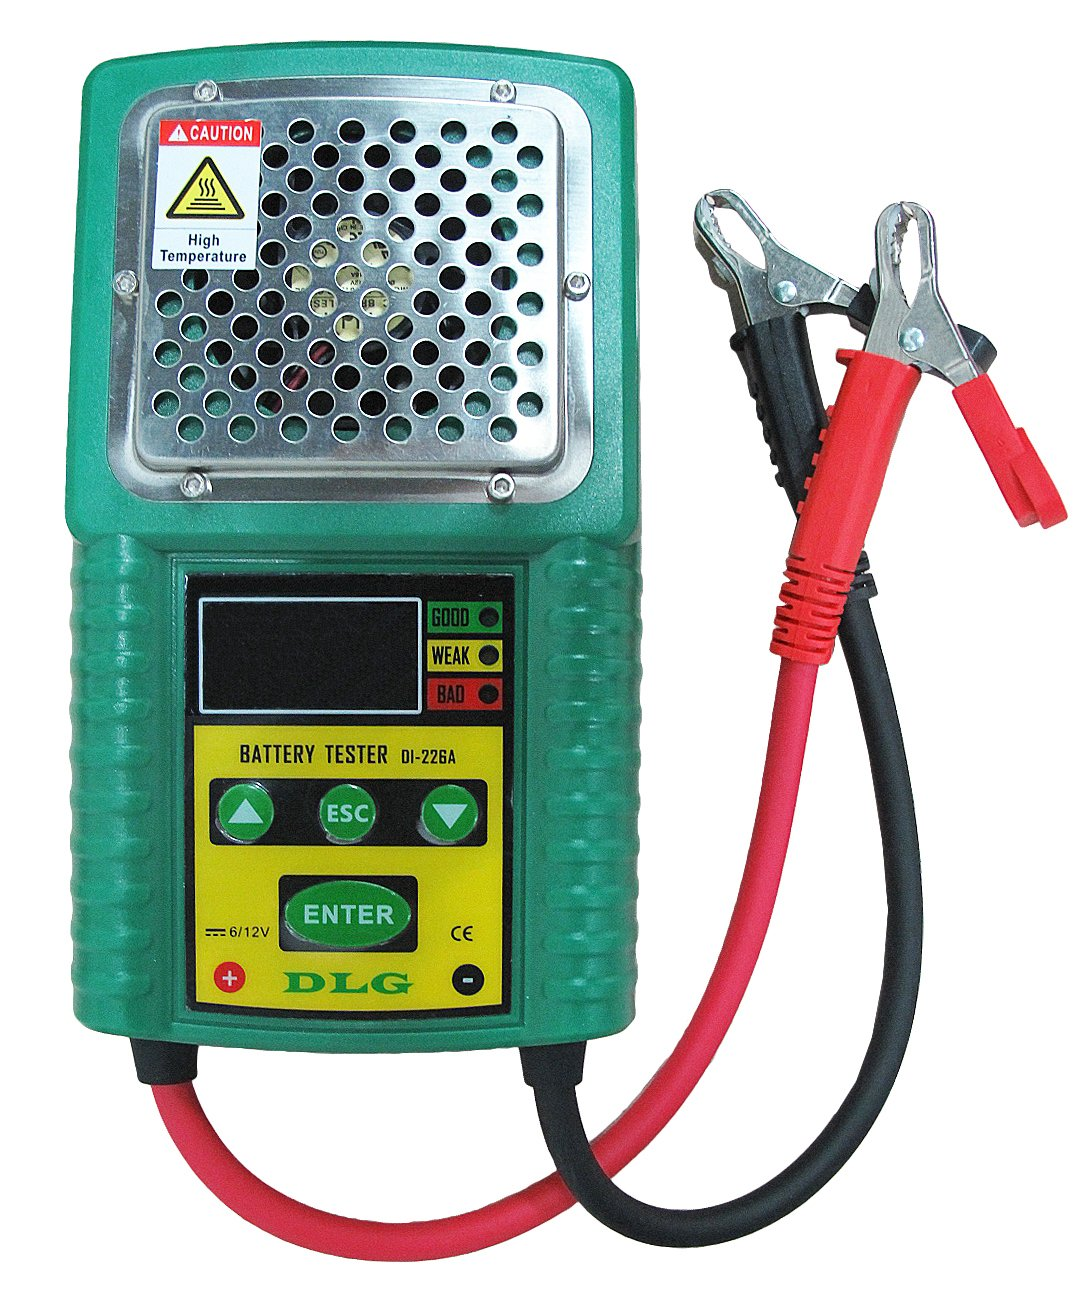 DI-226A LCD Indication Versatile Lead-Acid Battery Tester with CCA/Work Load/Internal Resistance Test Electric Vehicle Battery/UPS Battery/Solar Energy Battery/Marine Battery/Car Battery Diligent Instruments